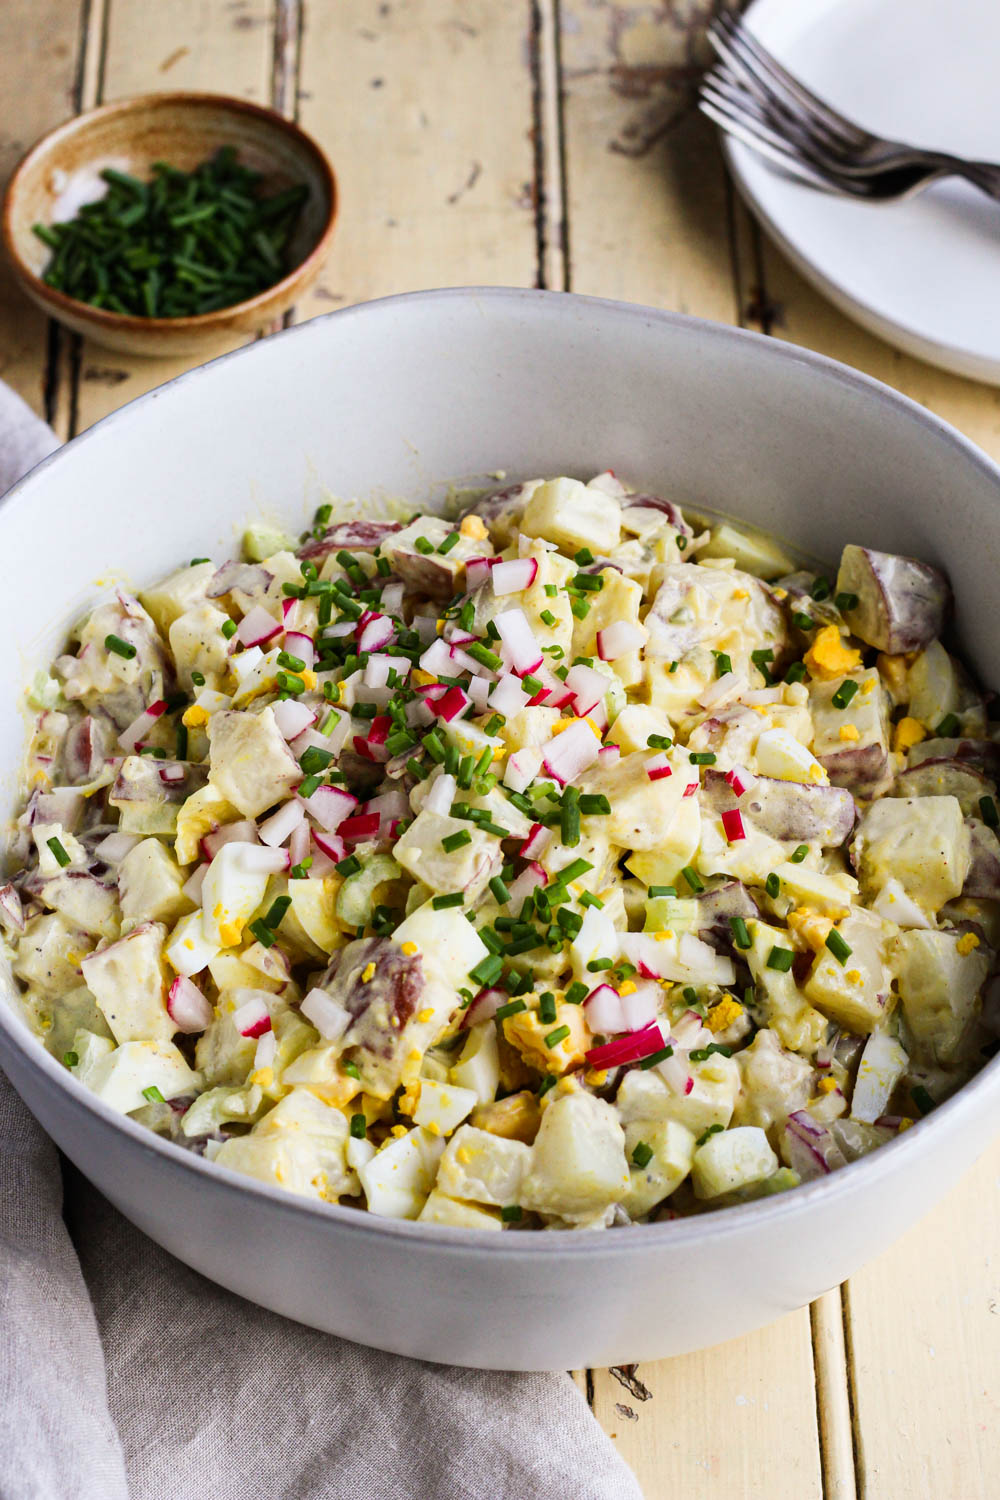 Best classic potato salad in a serving bowl